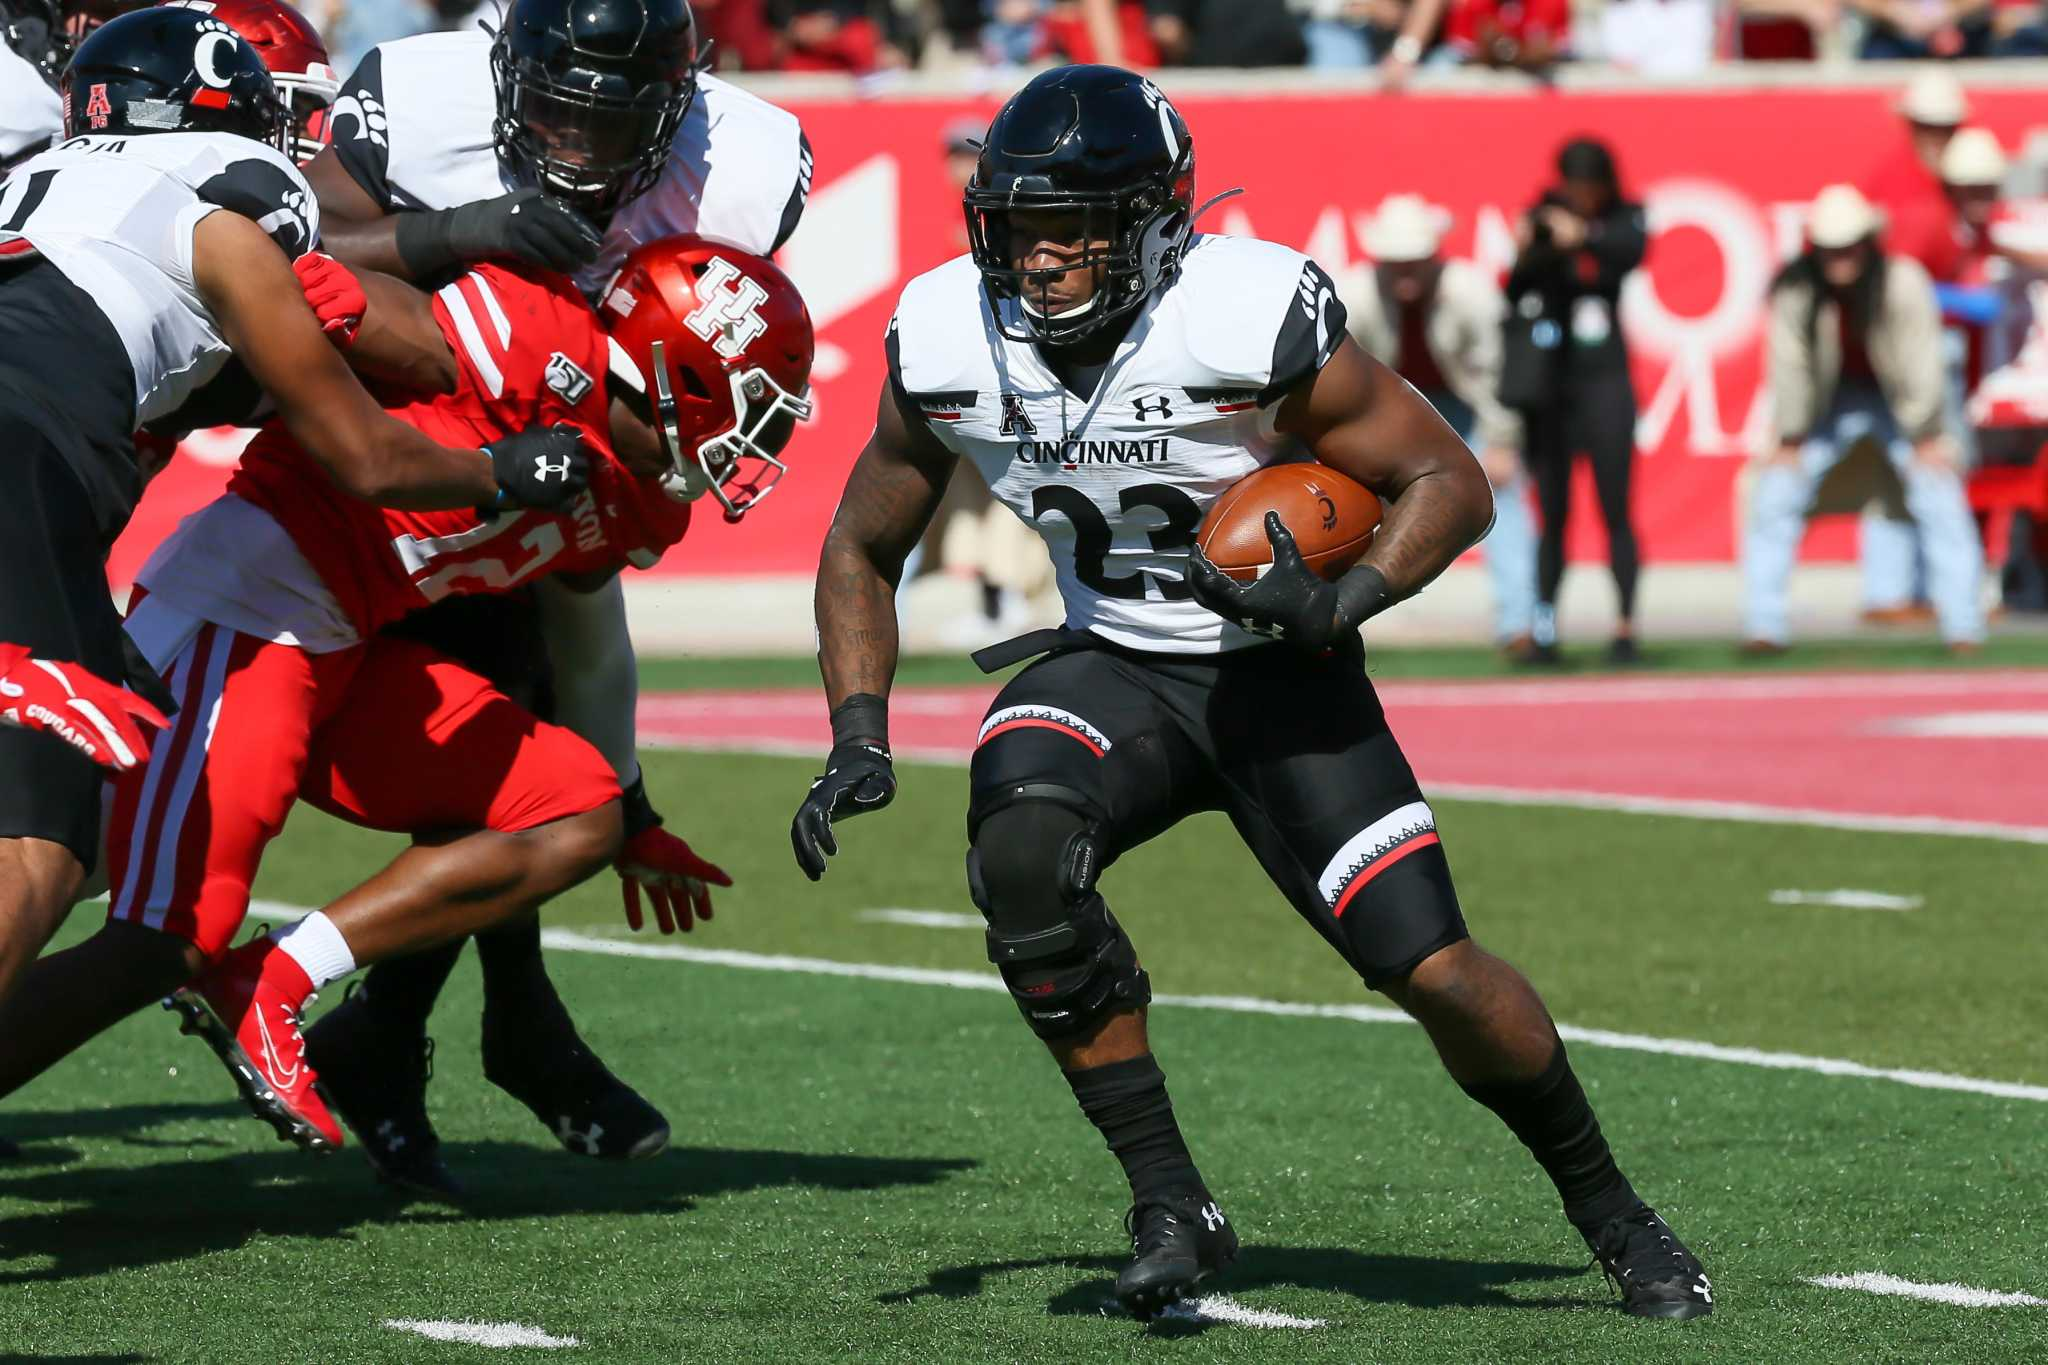 UH notebook: AAC sets schedule for next two seasons